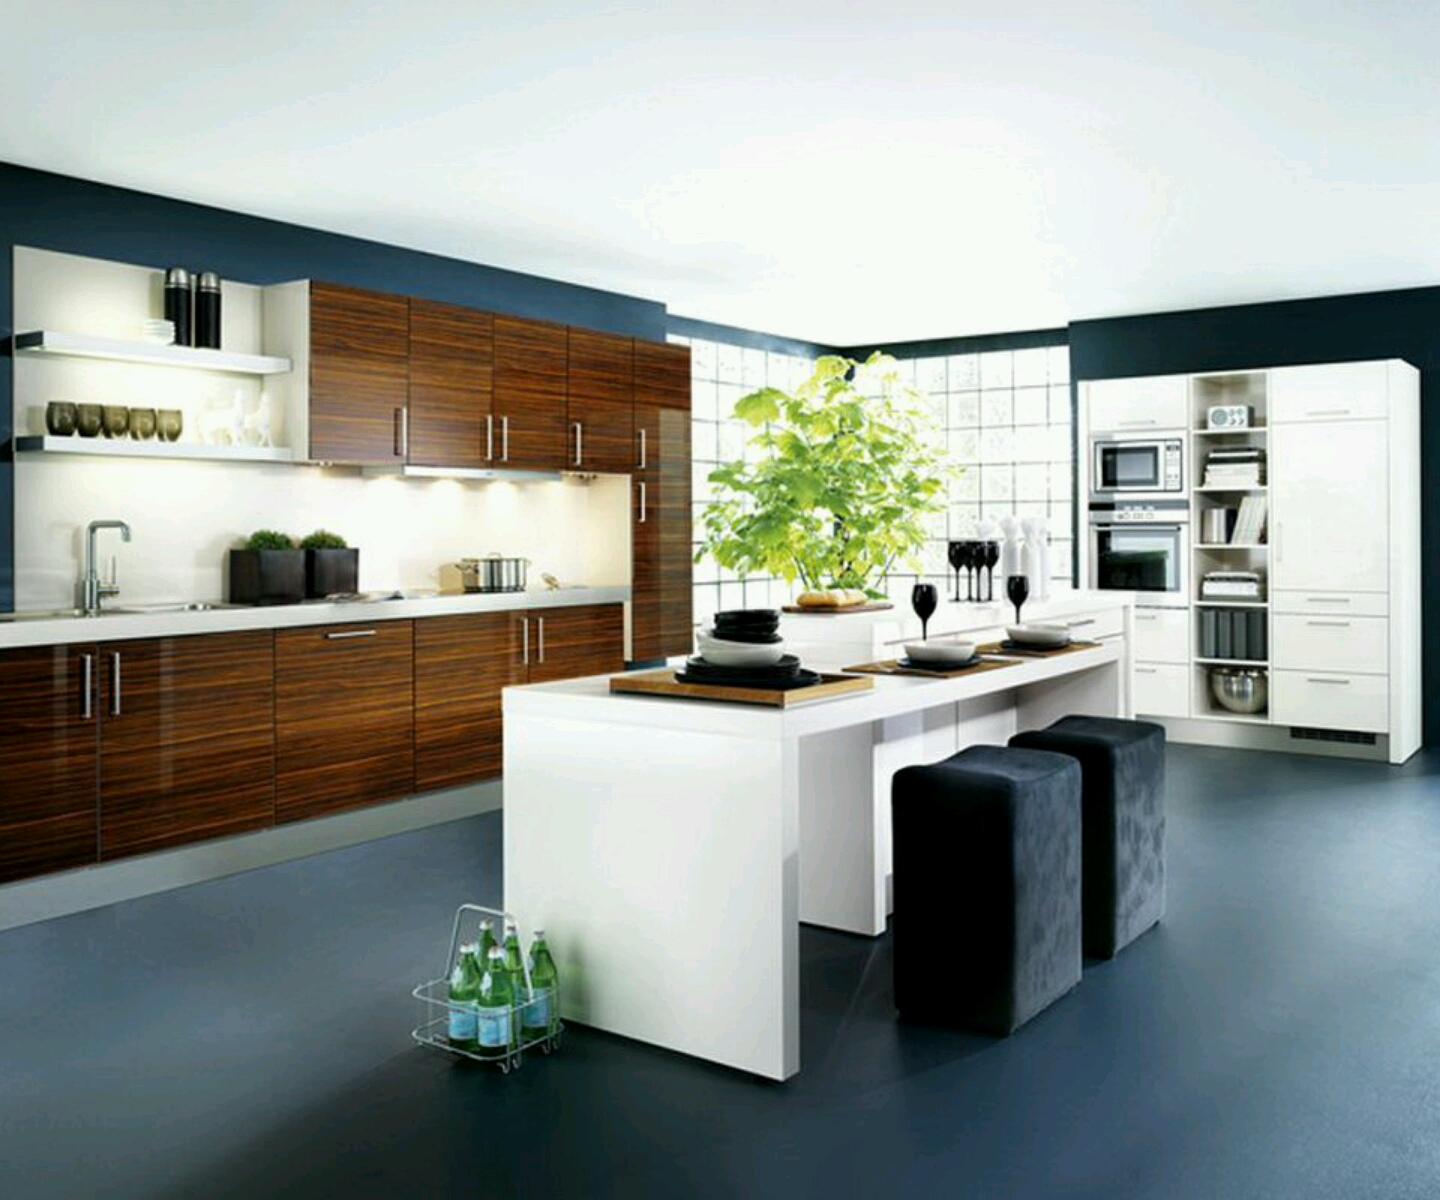 kitchen cabinets designs modern homes.